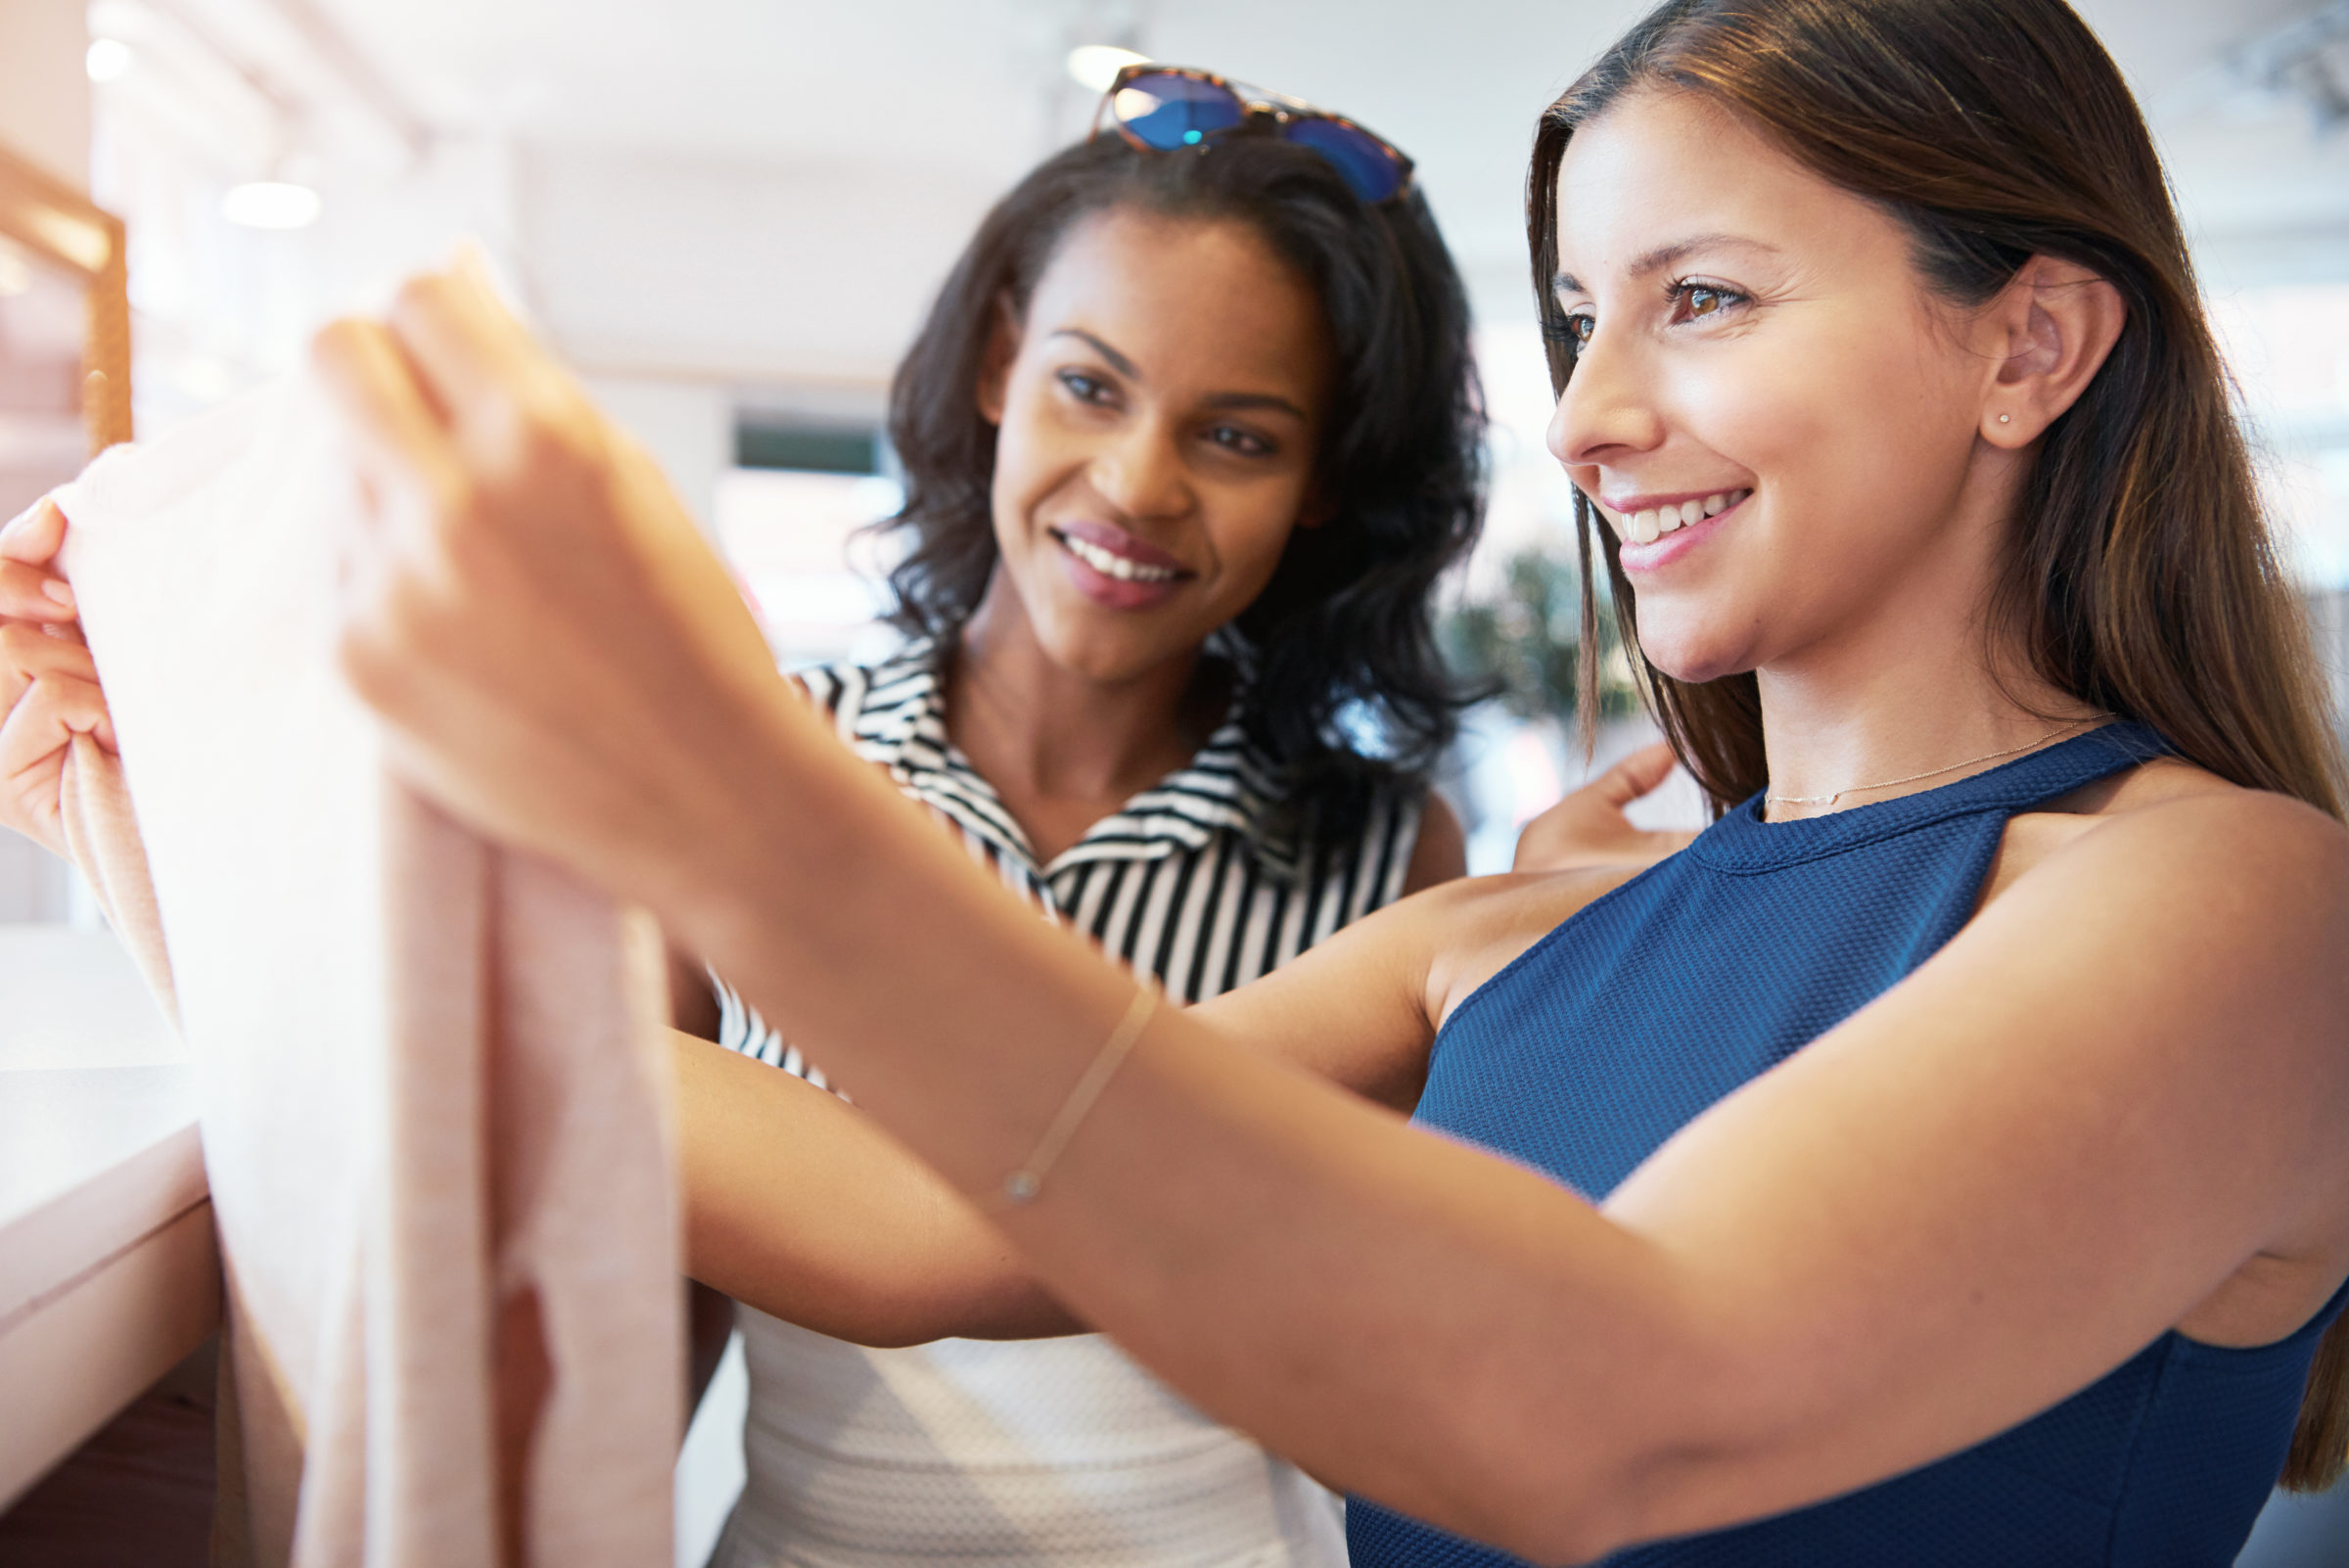 two young female friends shopping for clothes A65QUBR